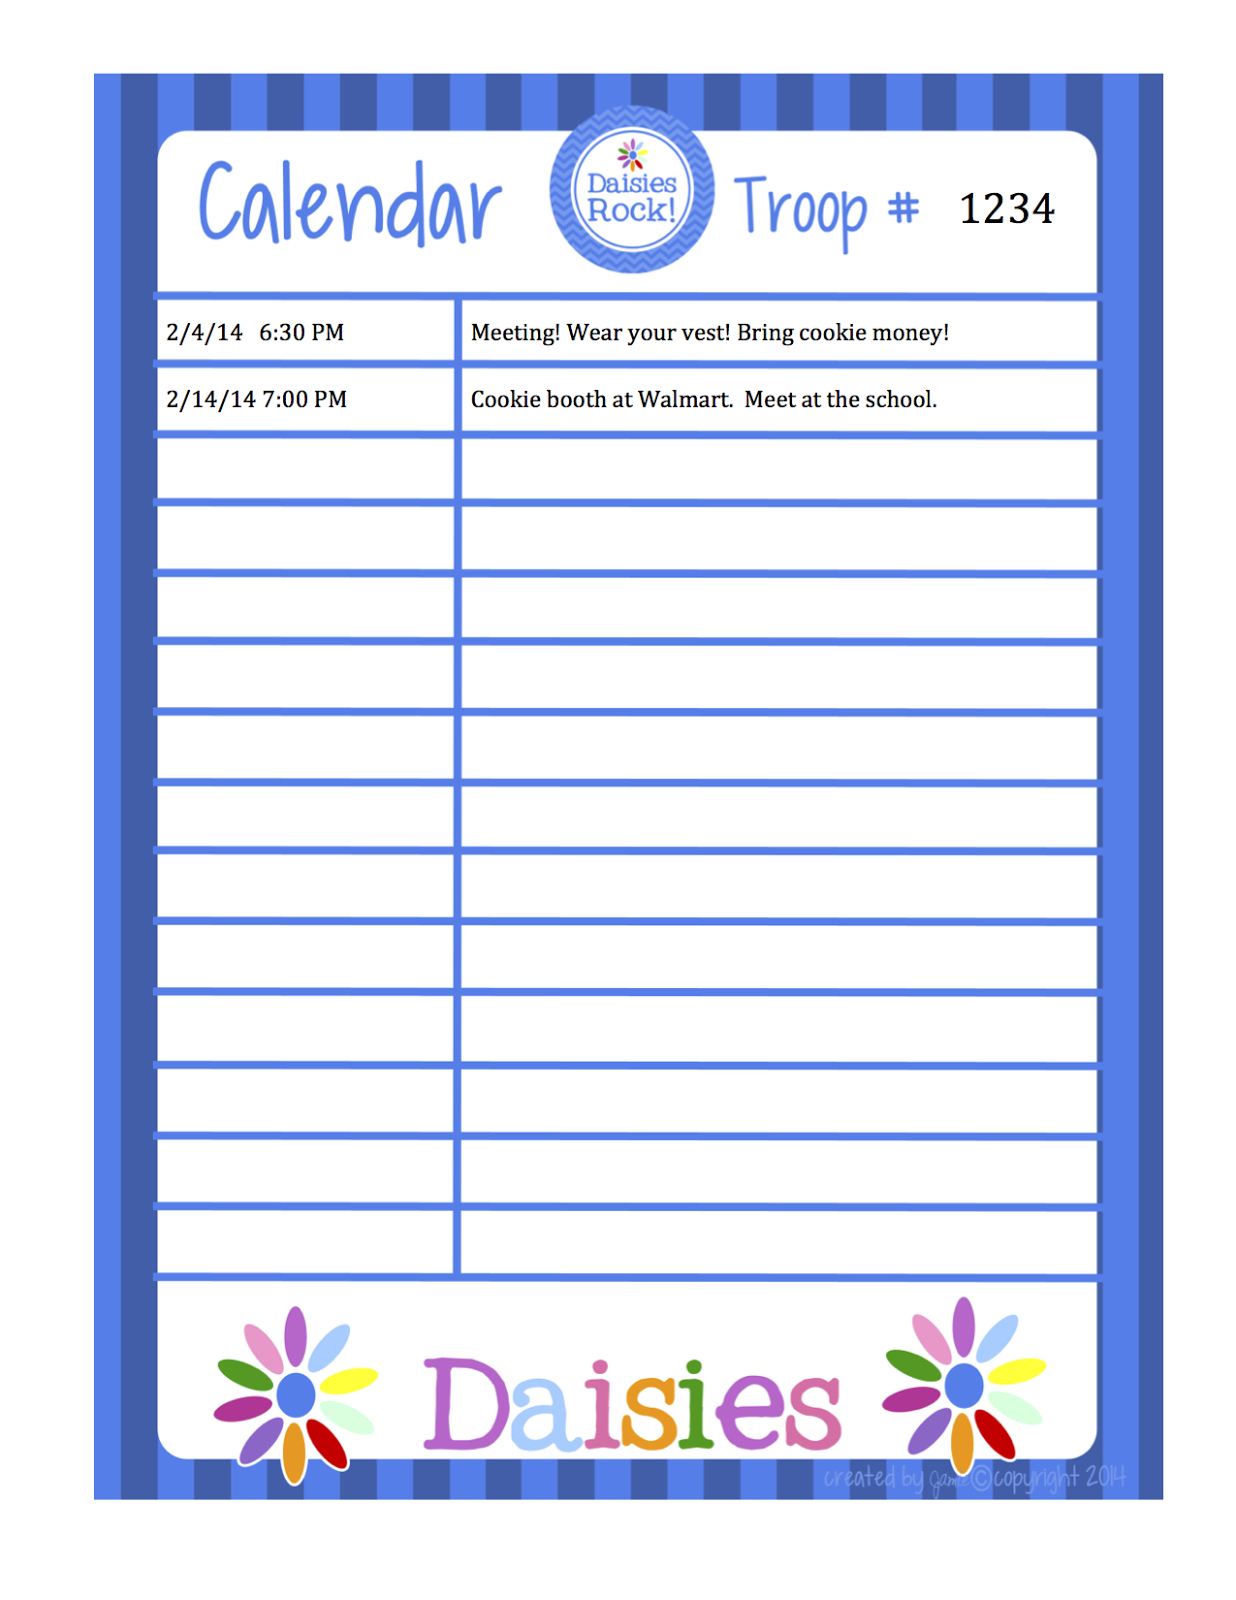 Calendar 2014 Template Free Excel Year Plannercalendar 2014 Uk 15 Free Printable My Fashionable Designs Girl Scouts Daisies Calendar